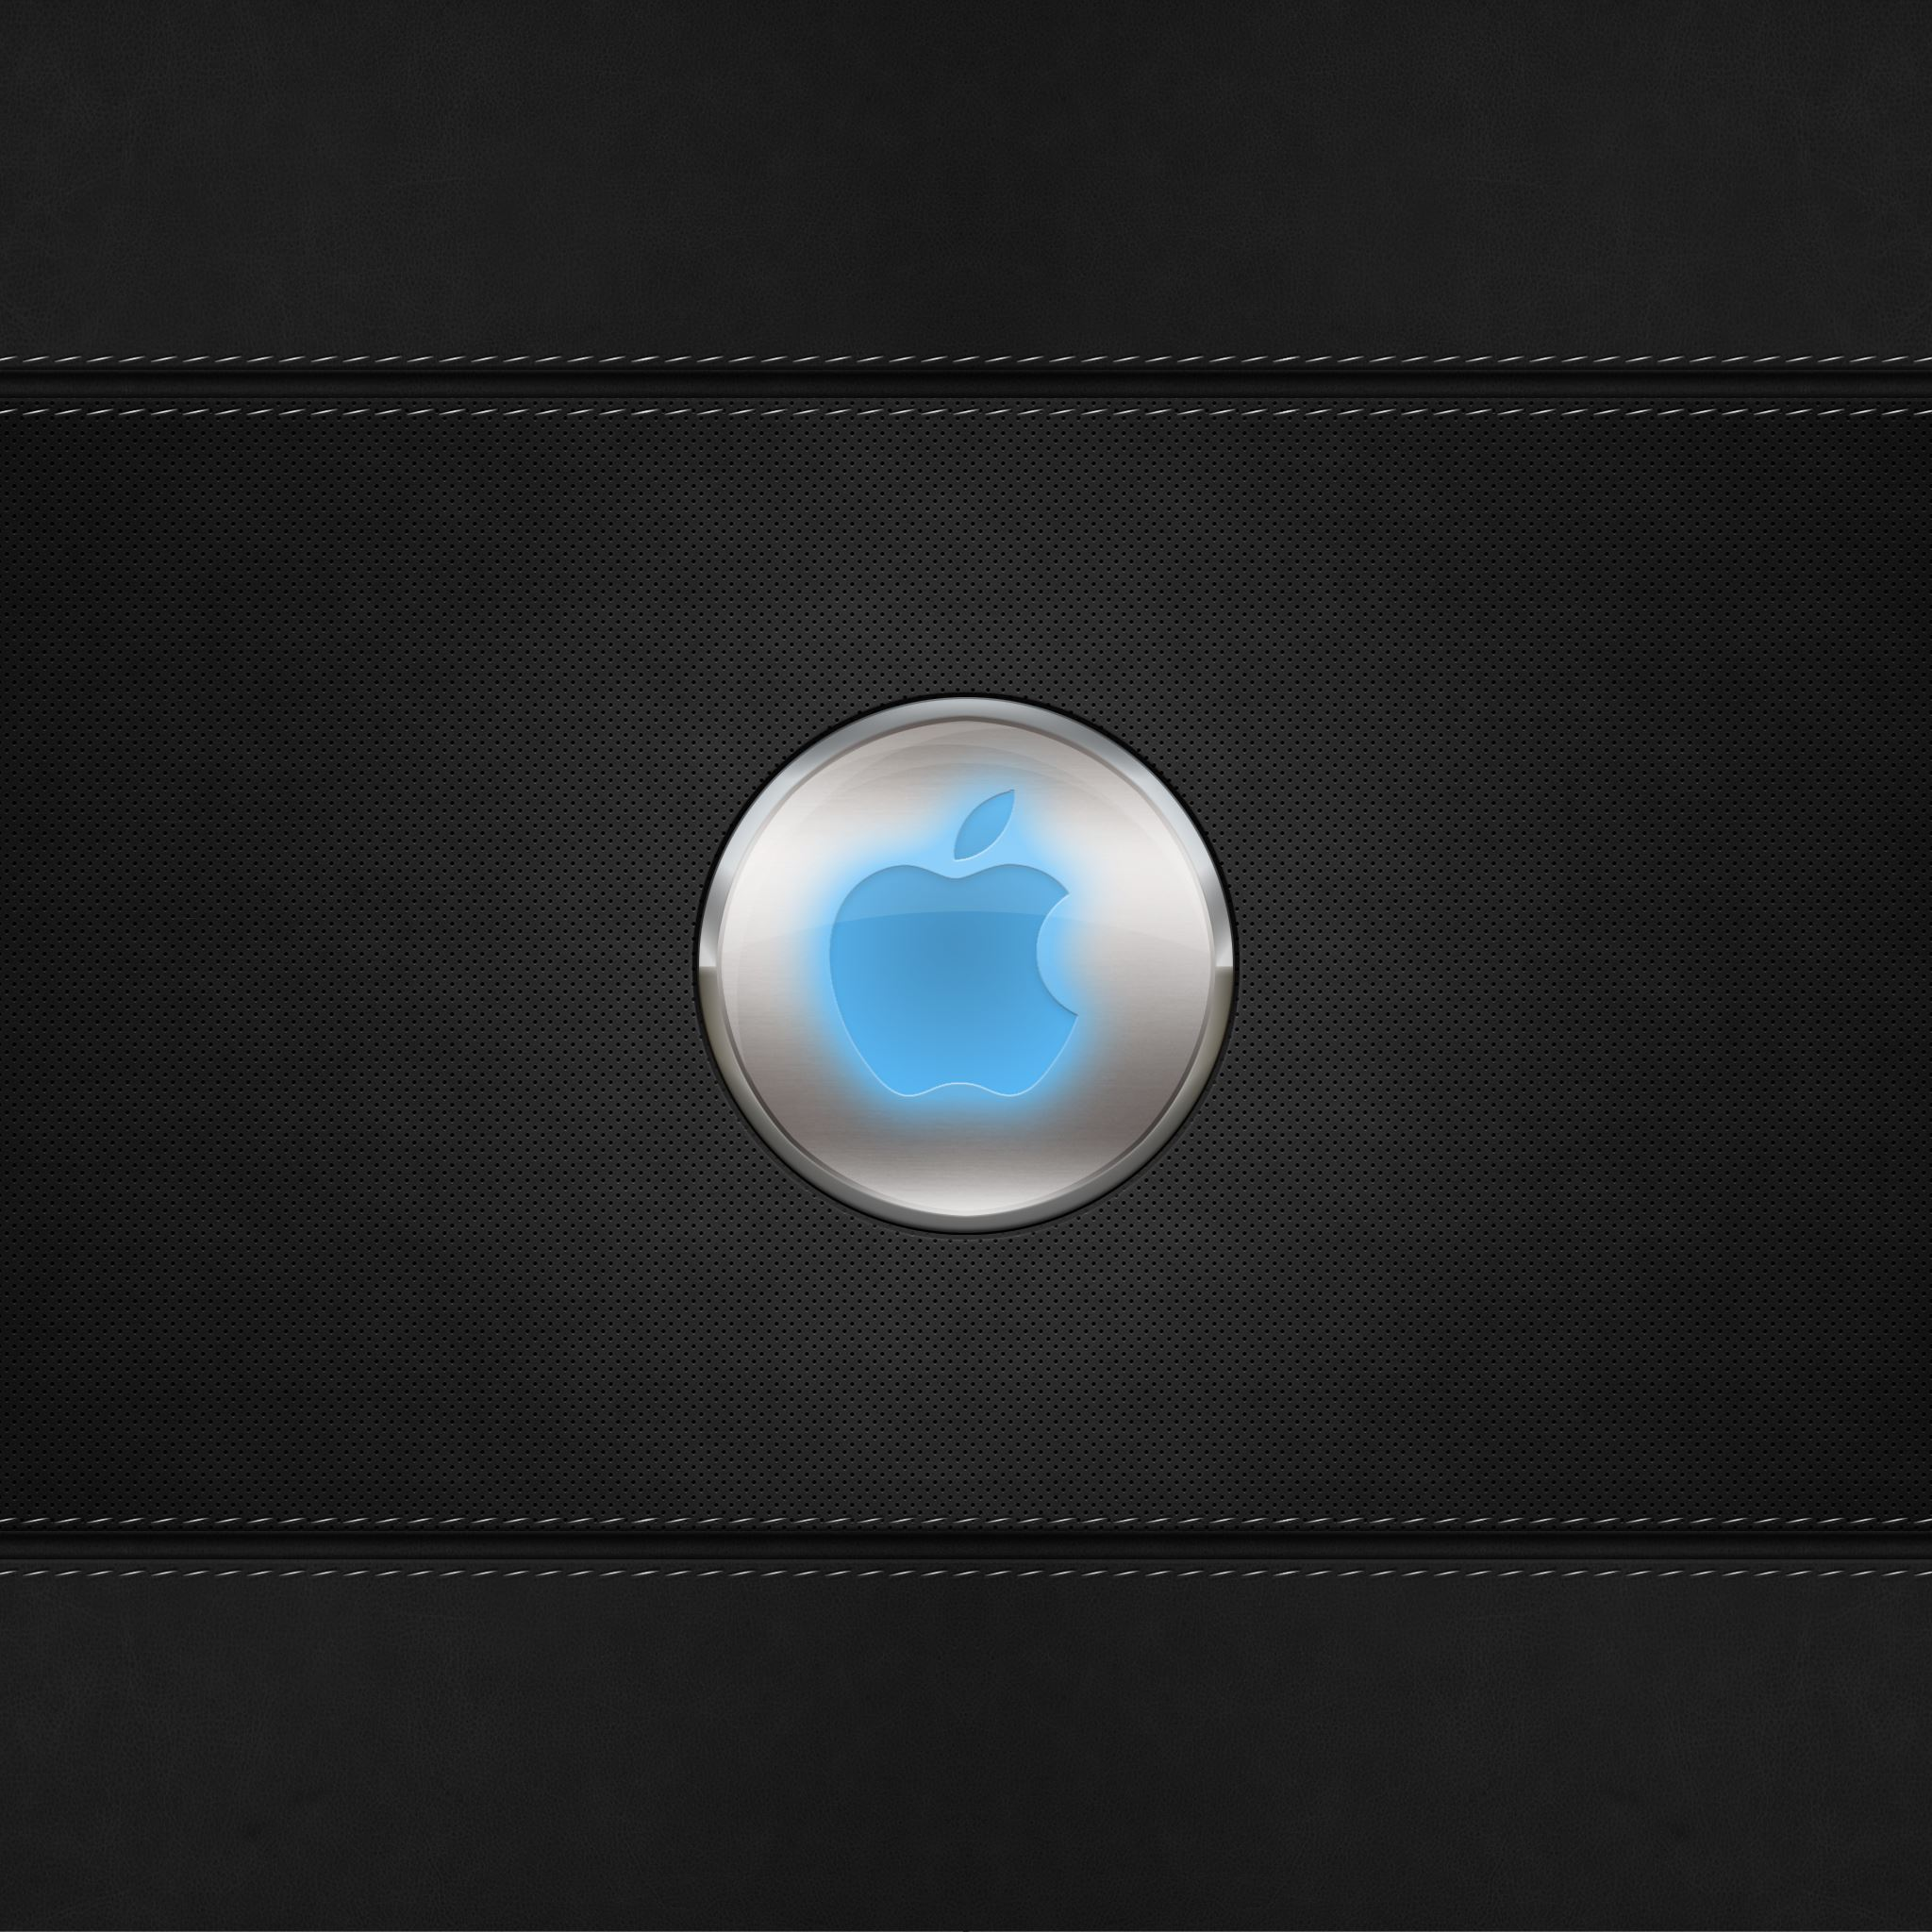 Blue Glow Apple Logo iPad Air wallpaper